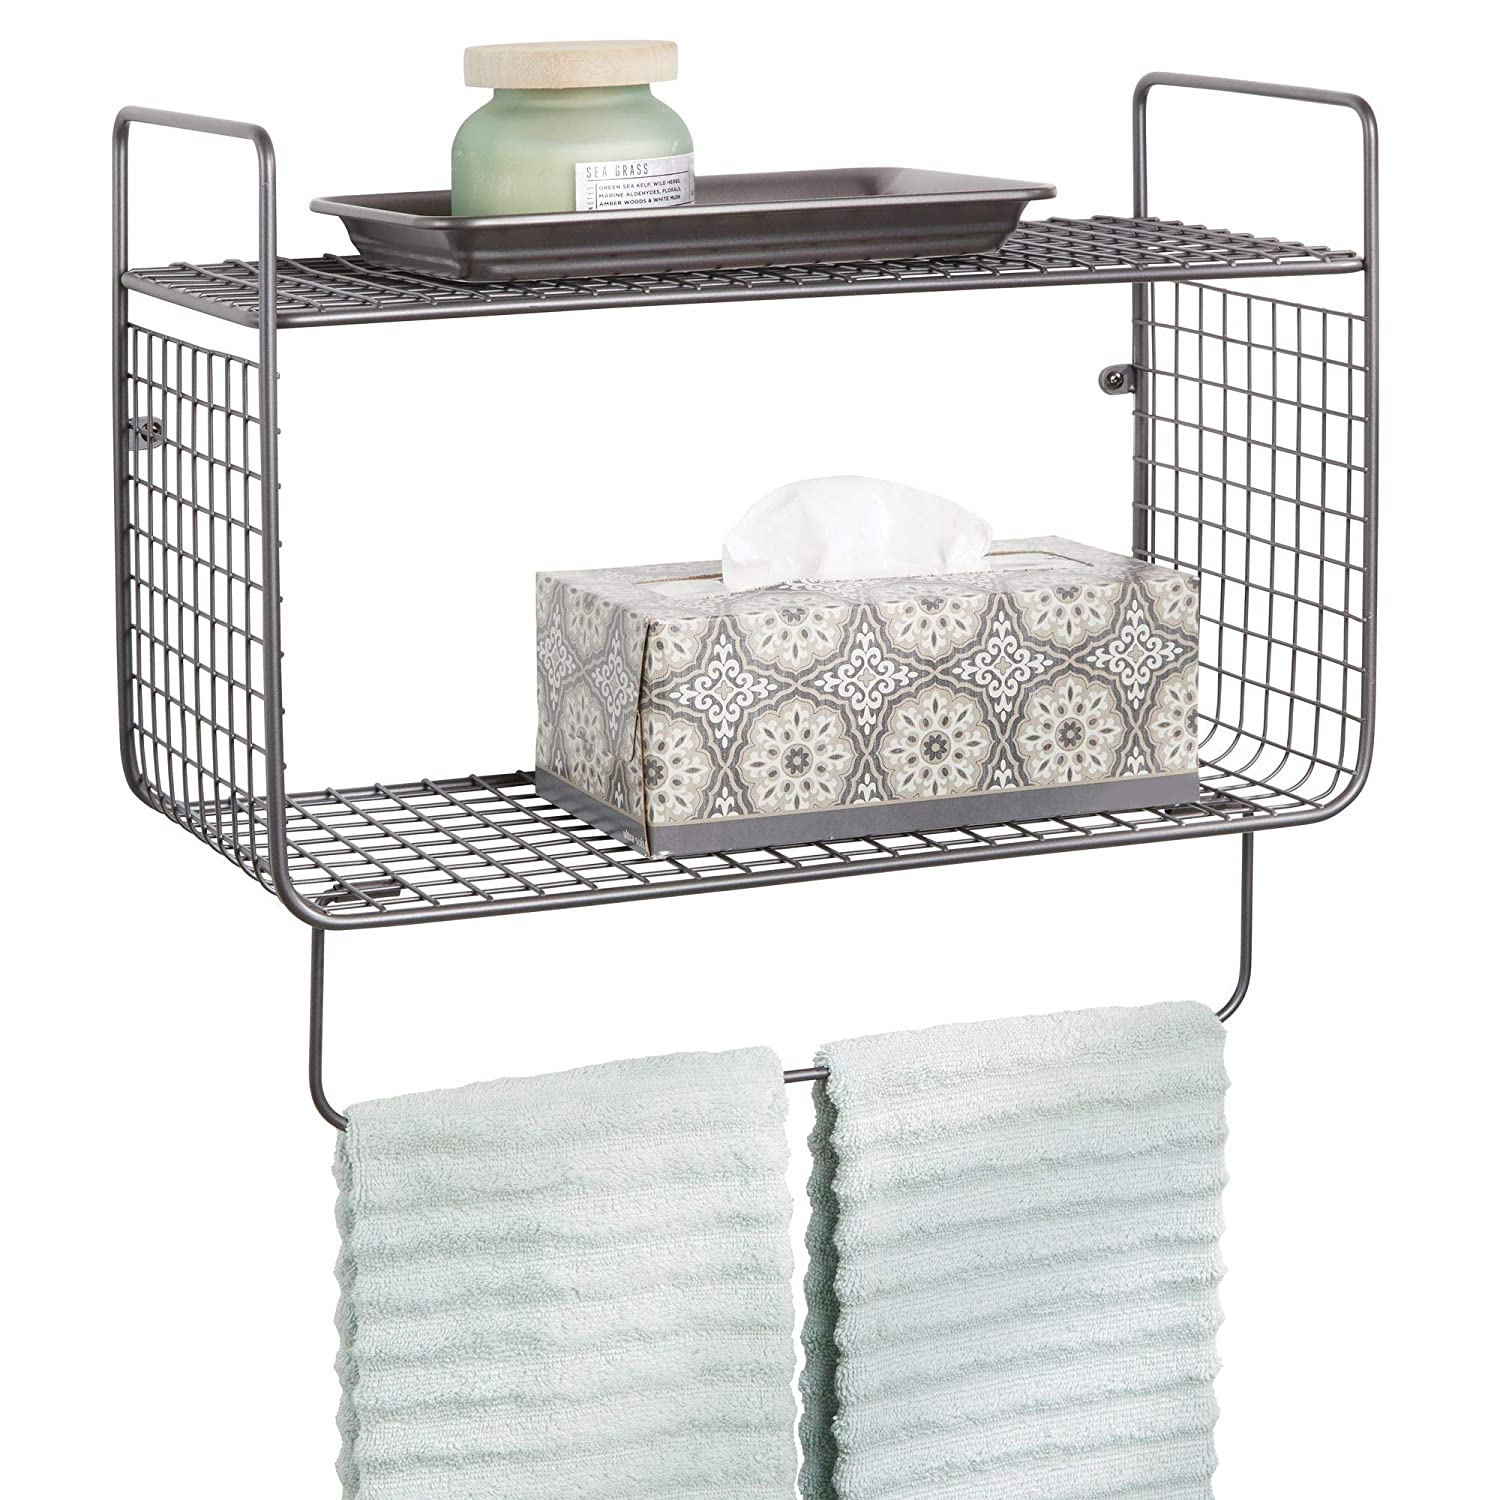 mDesign Metal Wire Farmhouse Wall Decor Storage Organizer 2 Tier Shelf with Towel Bar for Bathroom, Laundry Room, Kitchen, Garage - Wall Mount - Graphite Gray